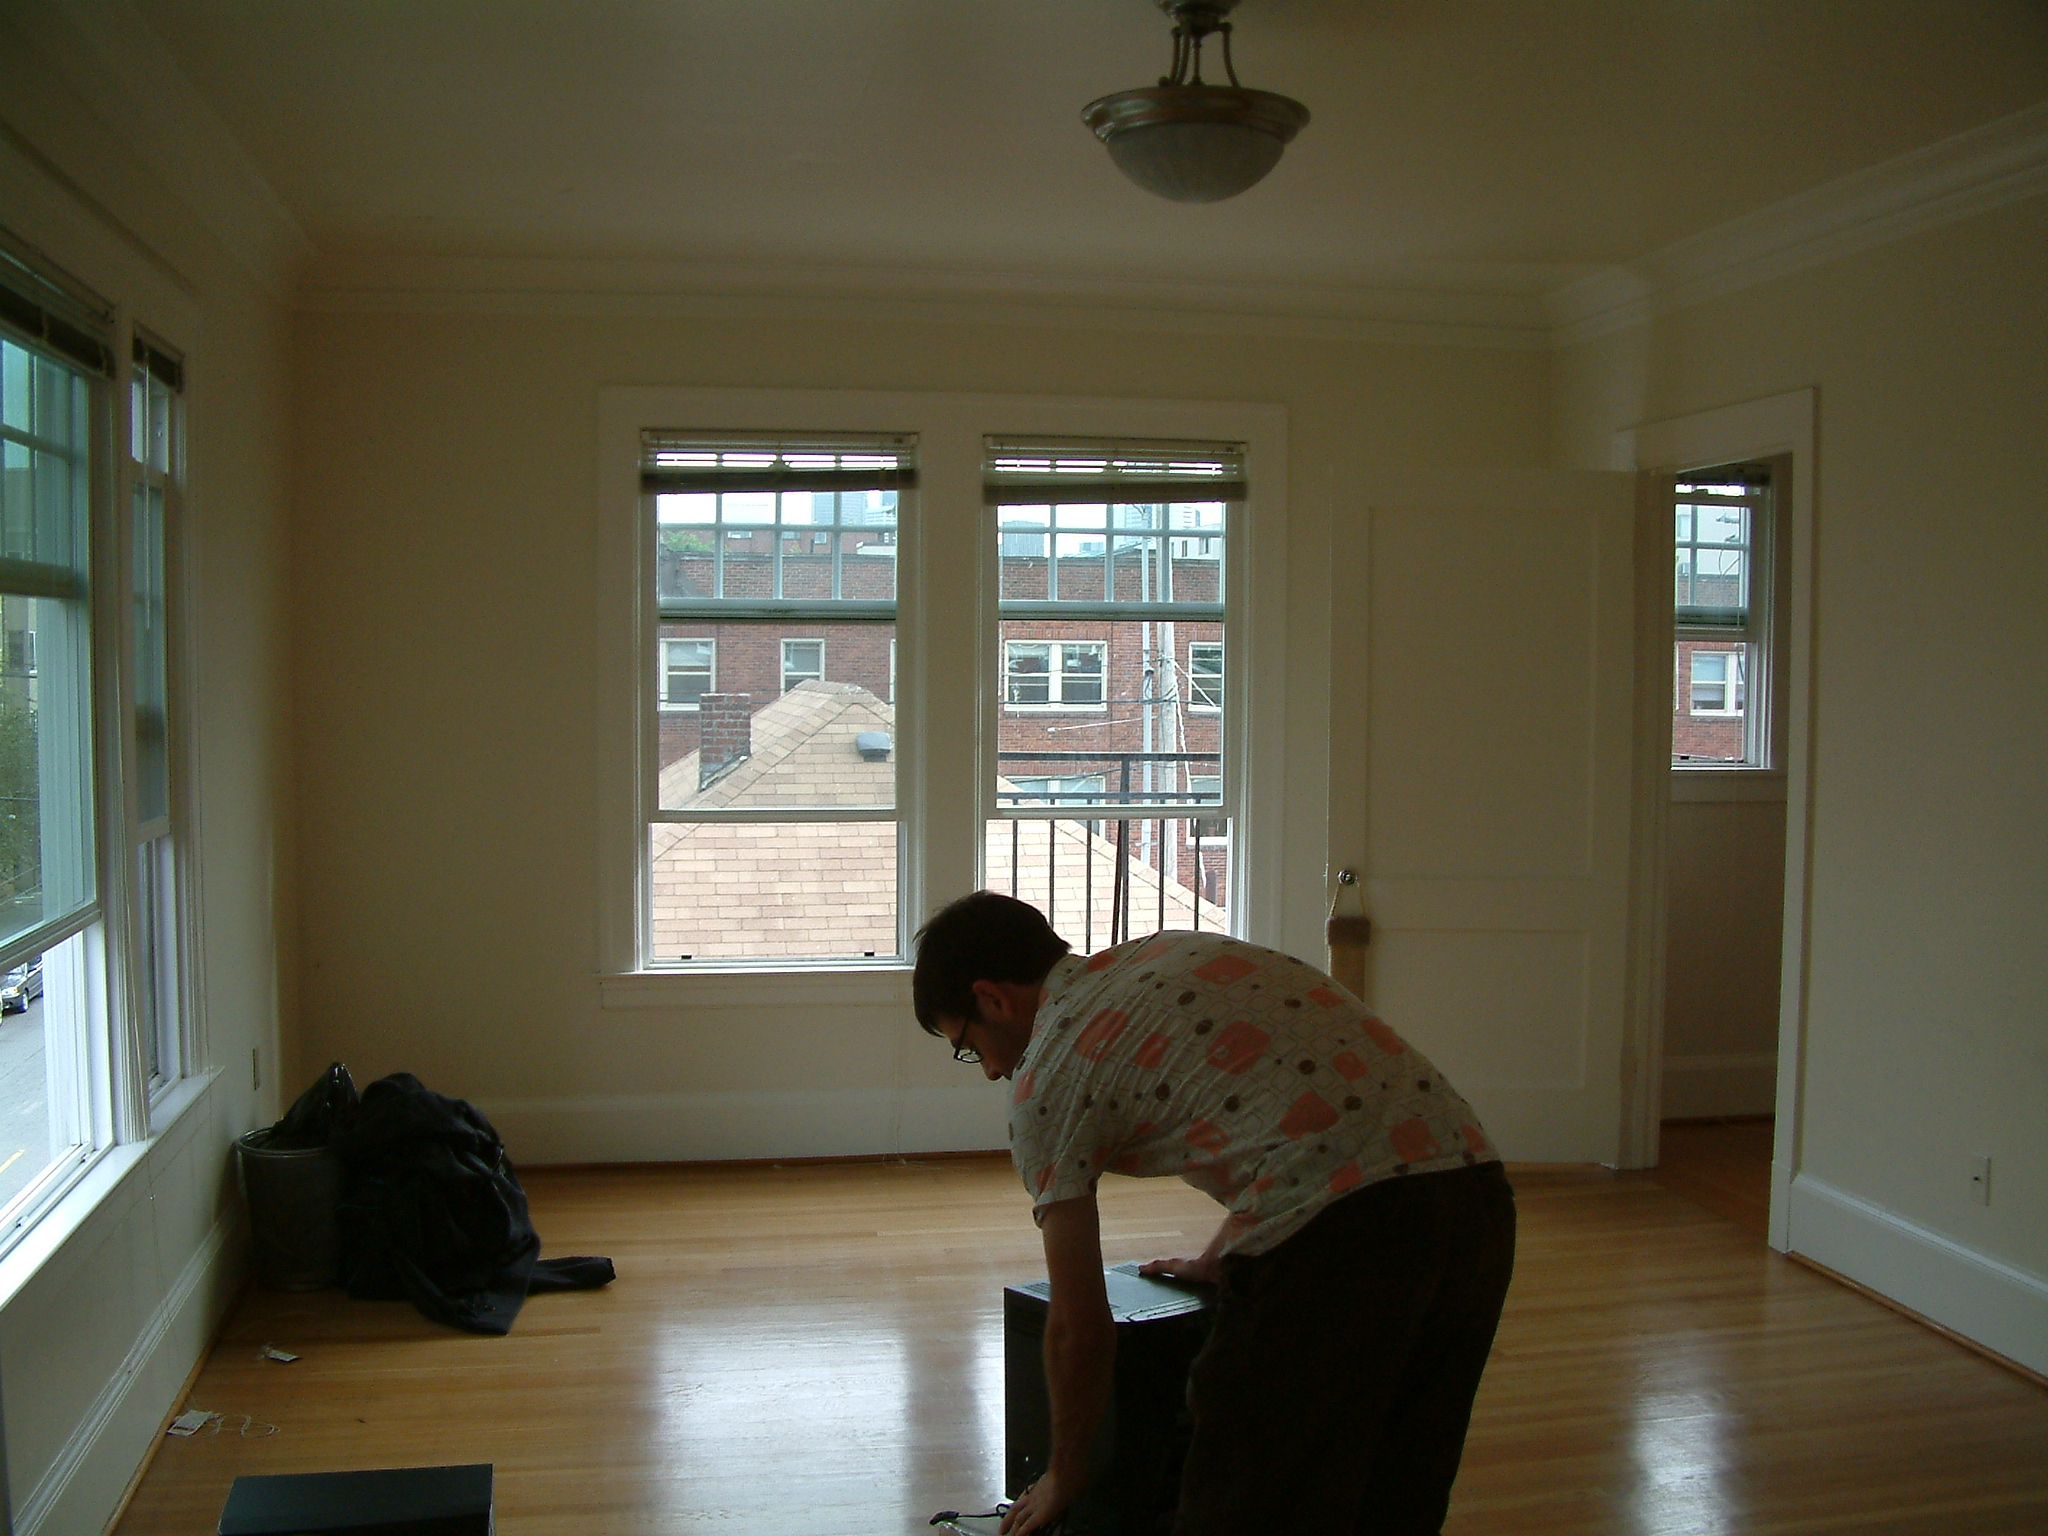 This is our one bedroom apartment, the day we moved in.